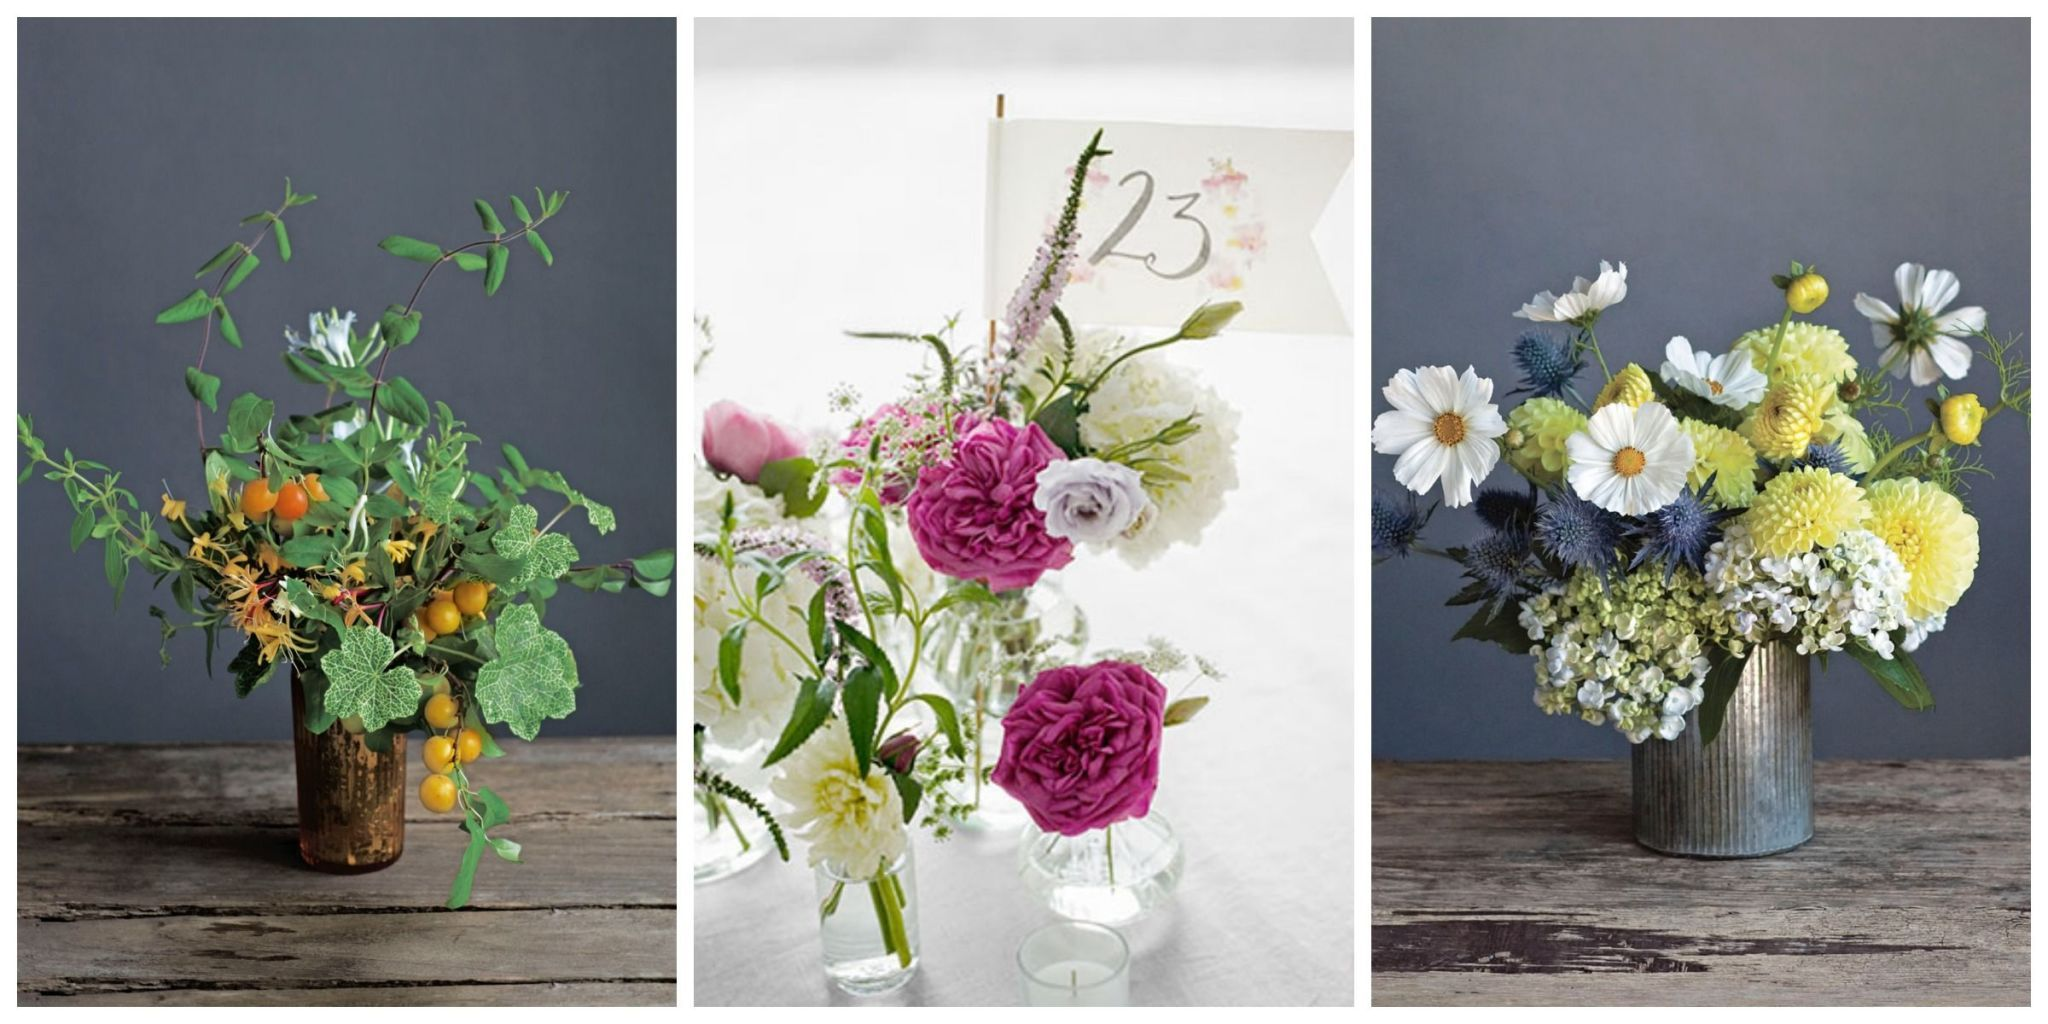 Charming From Galvanized Buckets To Glass Hurricanes, These Ideas For Floral  Arrangements, Candle Groupings, And More Will Put The Finishing Touches On  Your ...